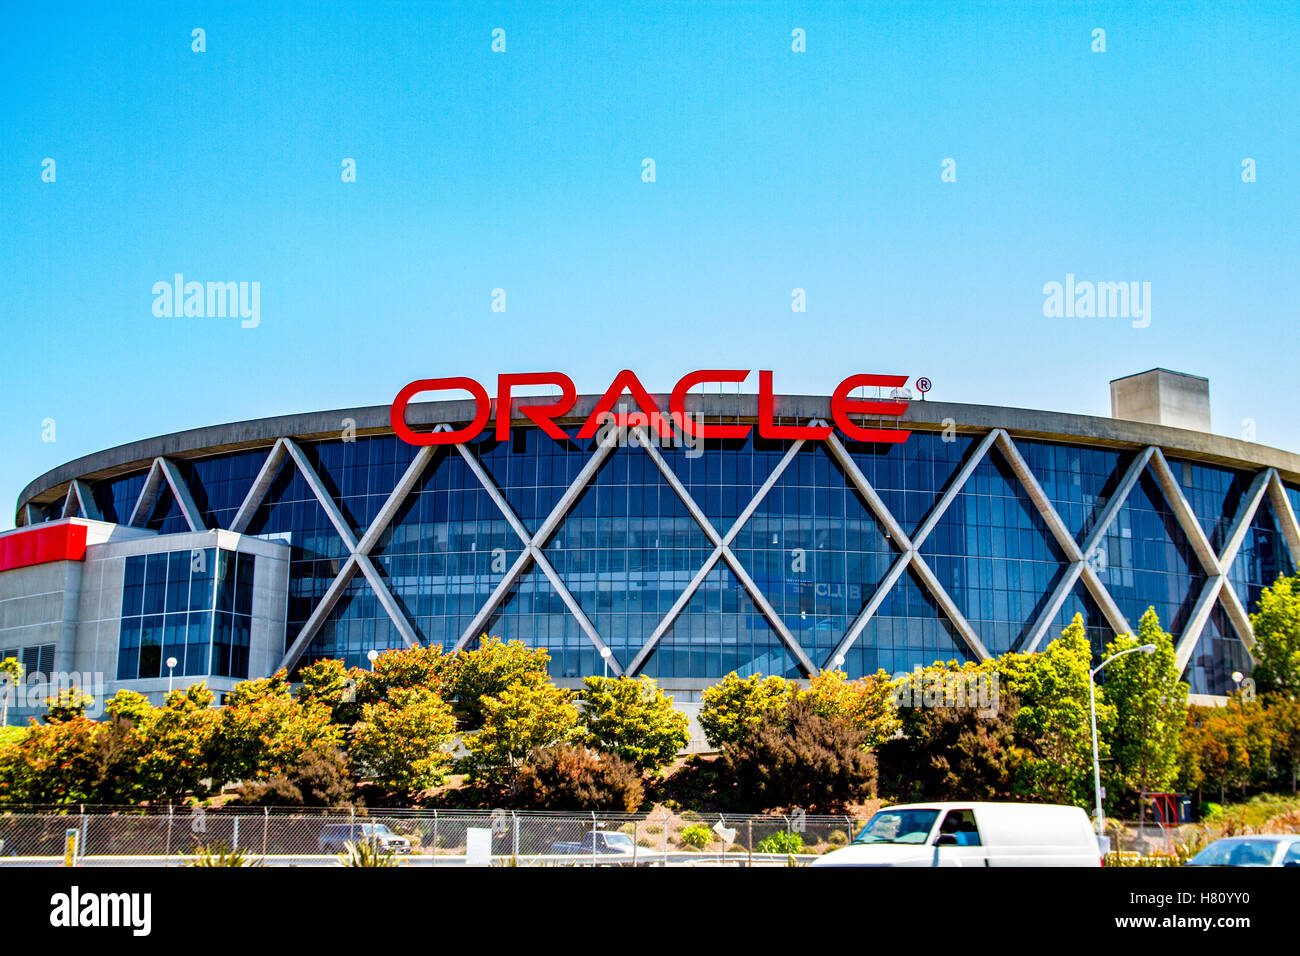 State warriors oracle arena and oakland alameda county coliseum - Oracle Arena In Oakland California Home Of The Golden State Warriors